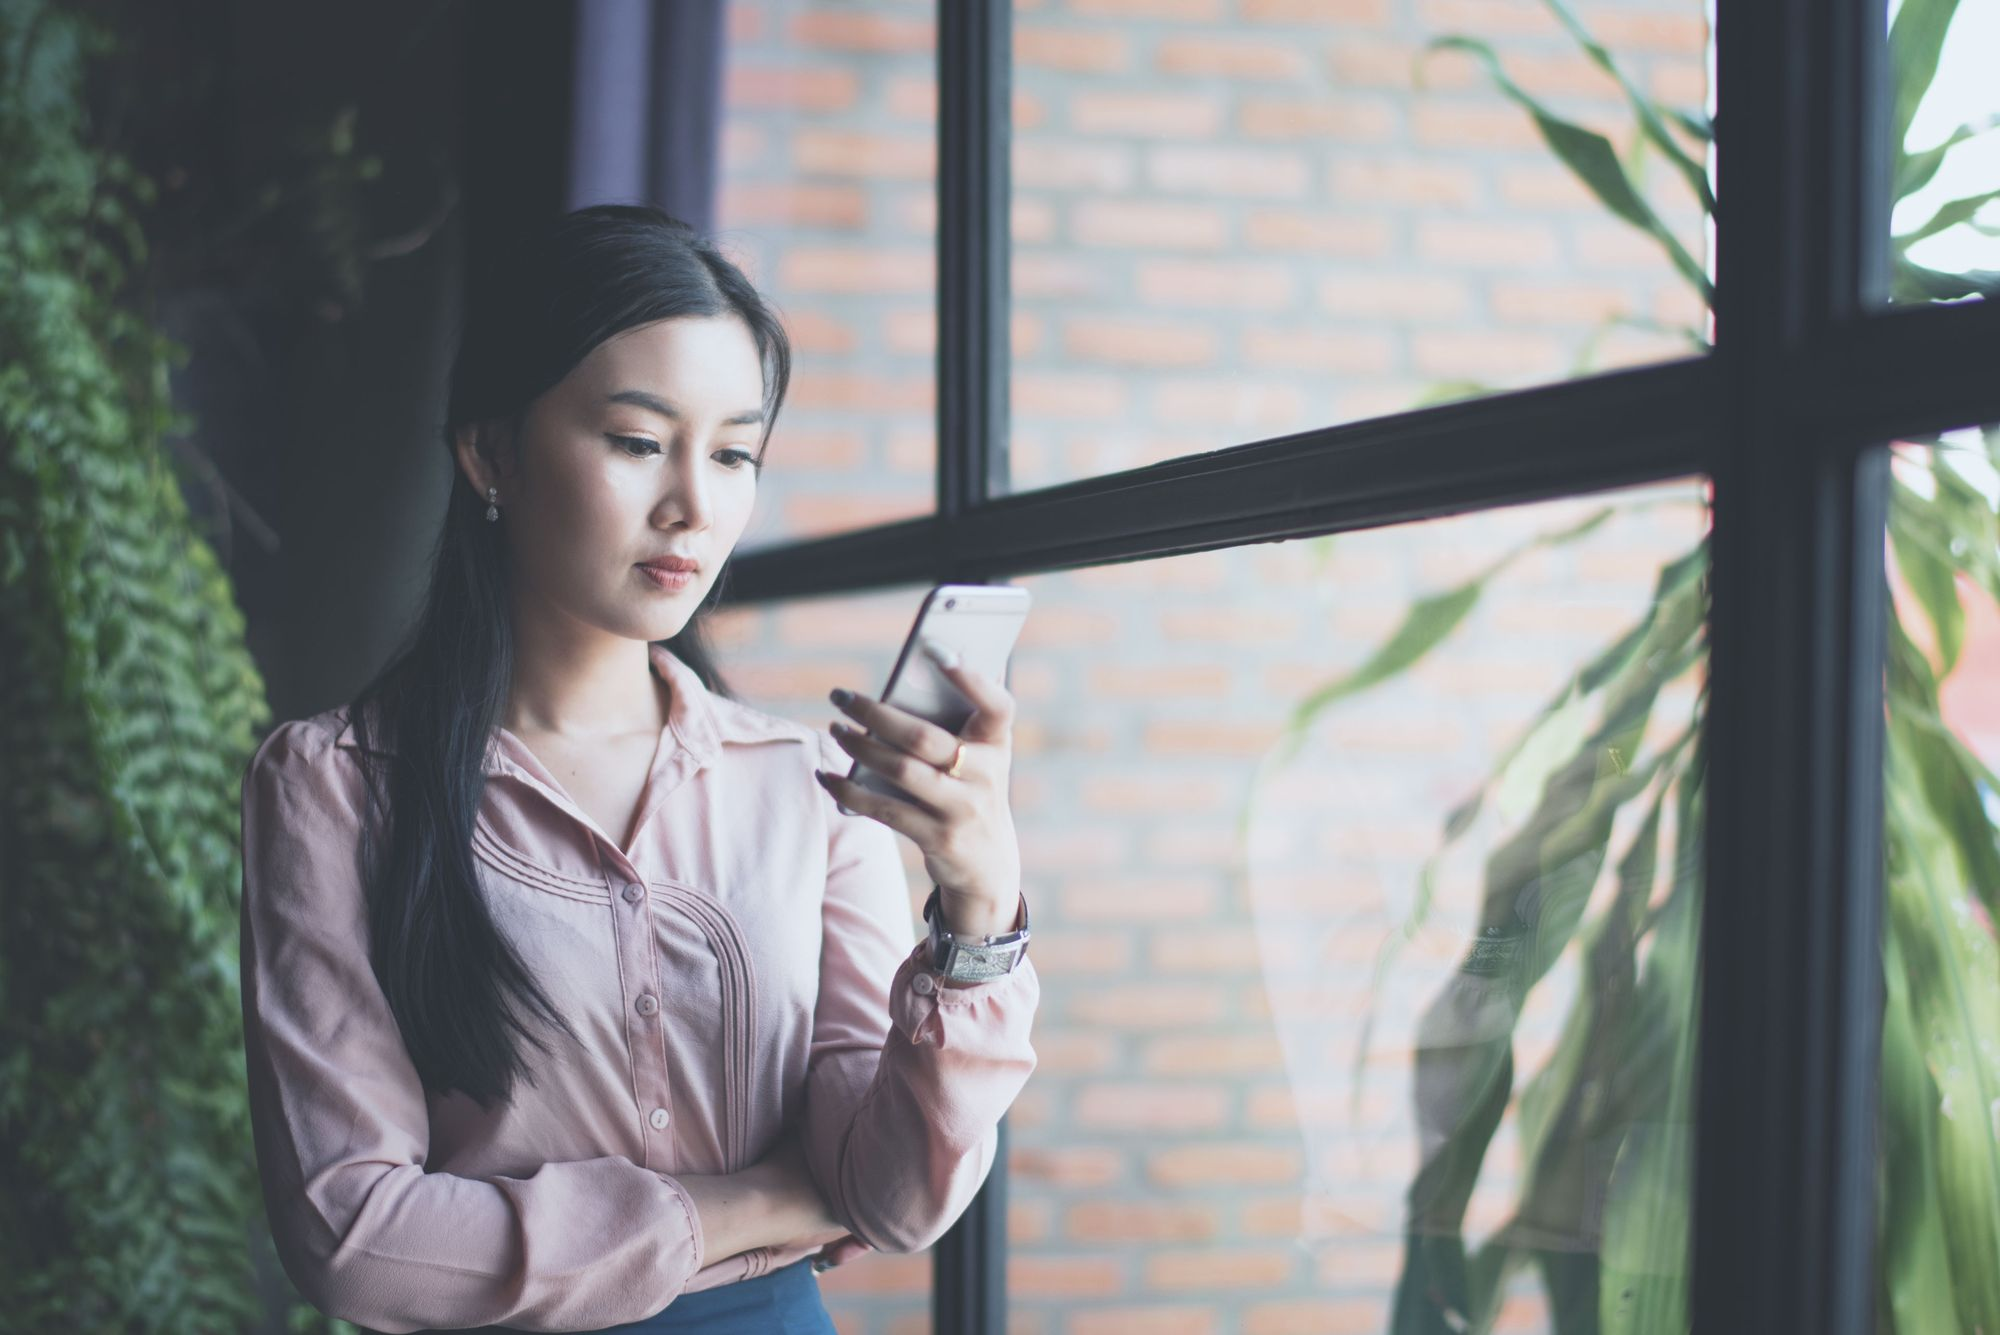 Woman searching on phone 3